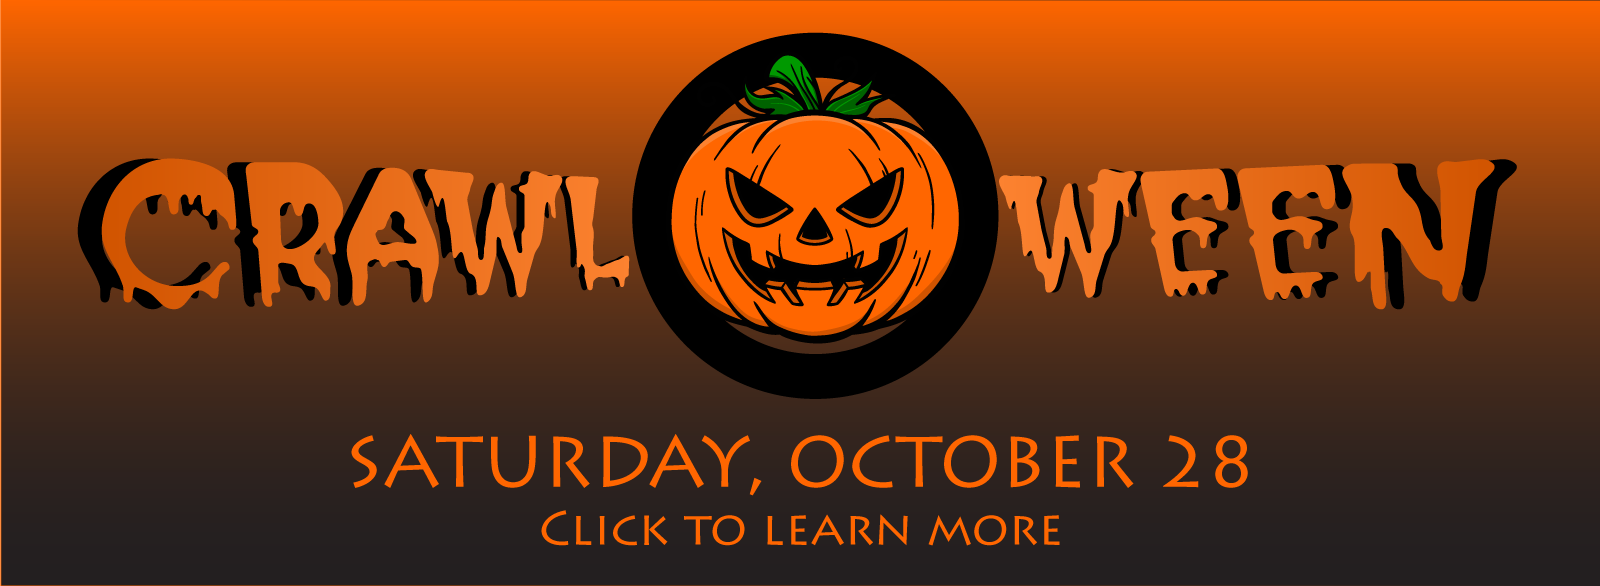 6479-crawl-o-ween-banner.png